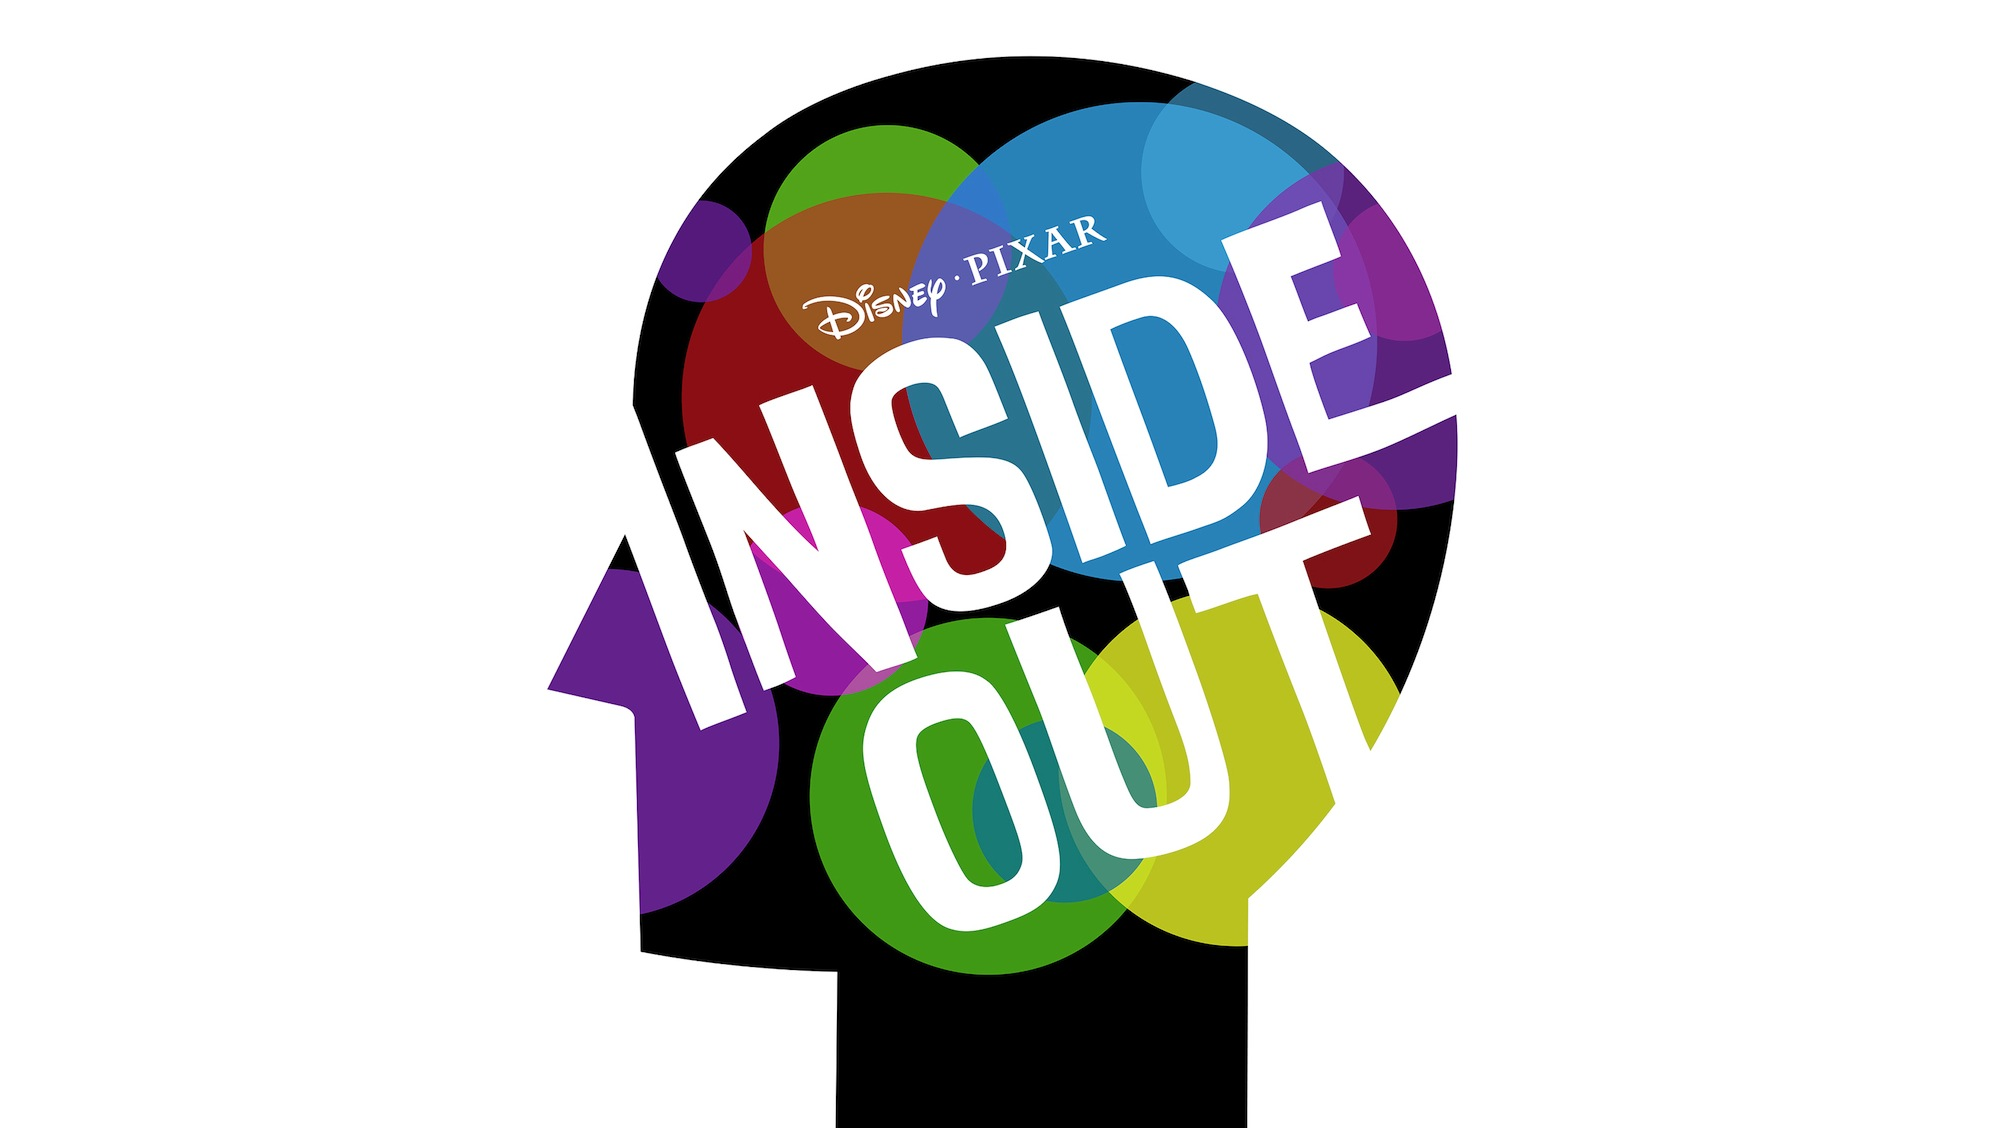 Wallpaper : logo, Inside Out, 2015, brand, font, product.